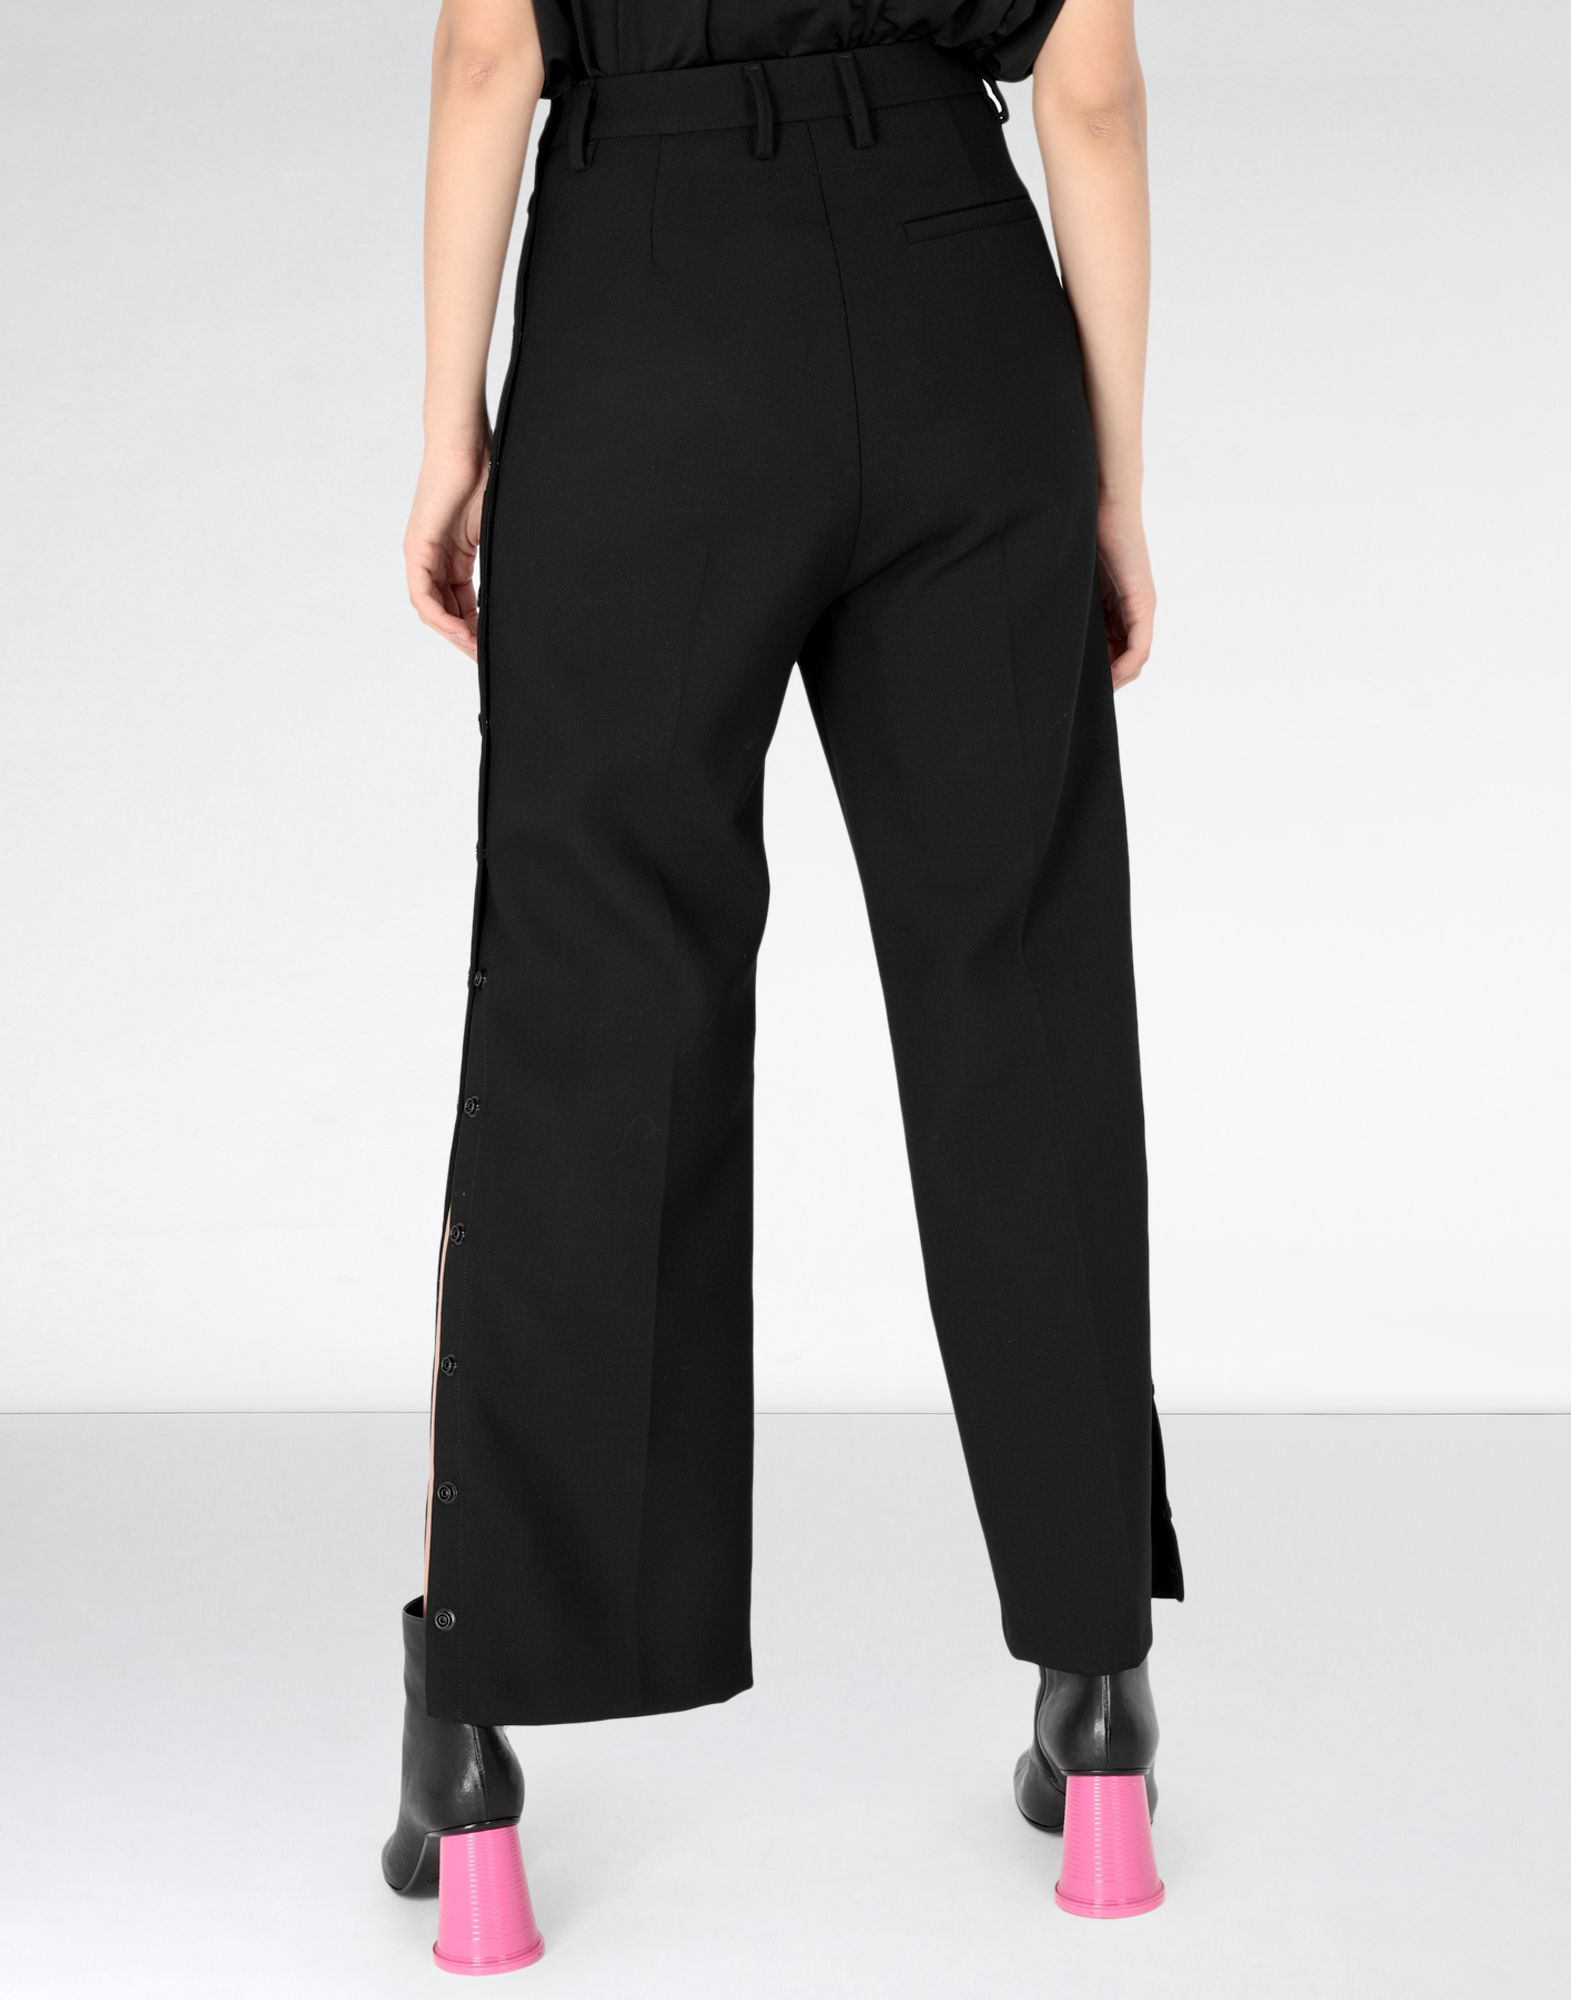 MM6 MAISON MARGIELA High waisted trousers with side buttons Casual pants Woman d